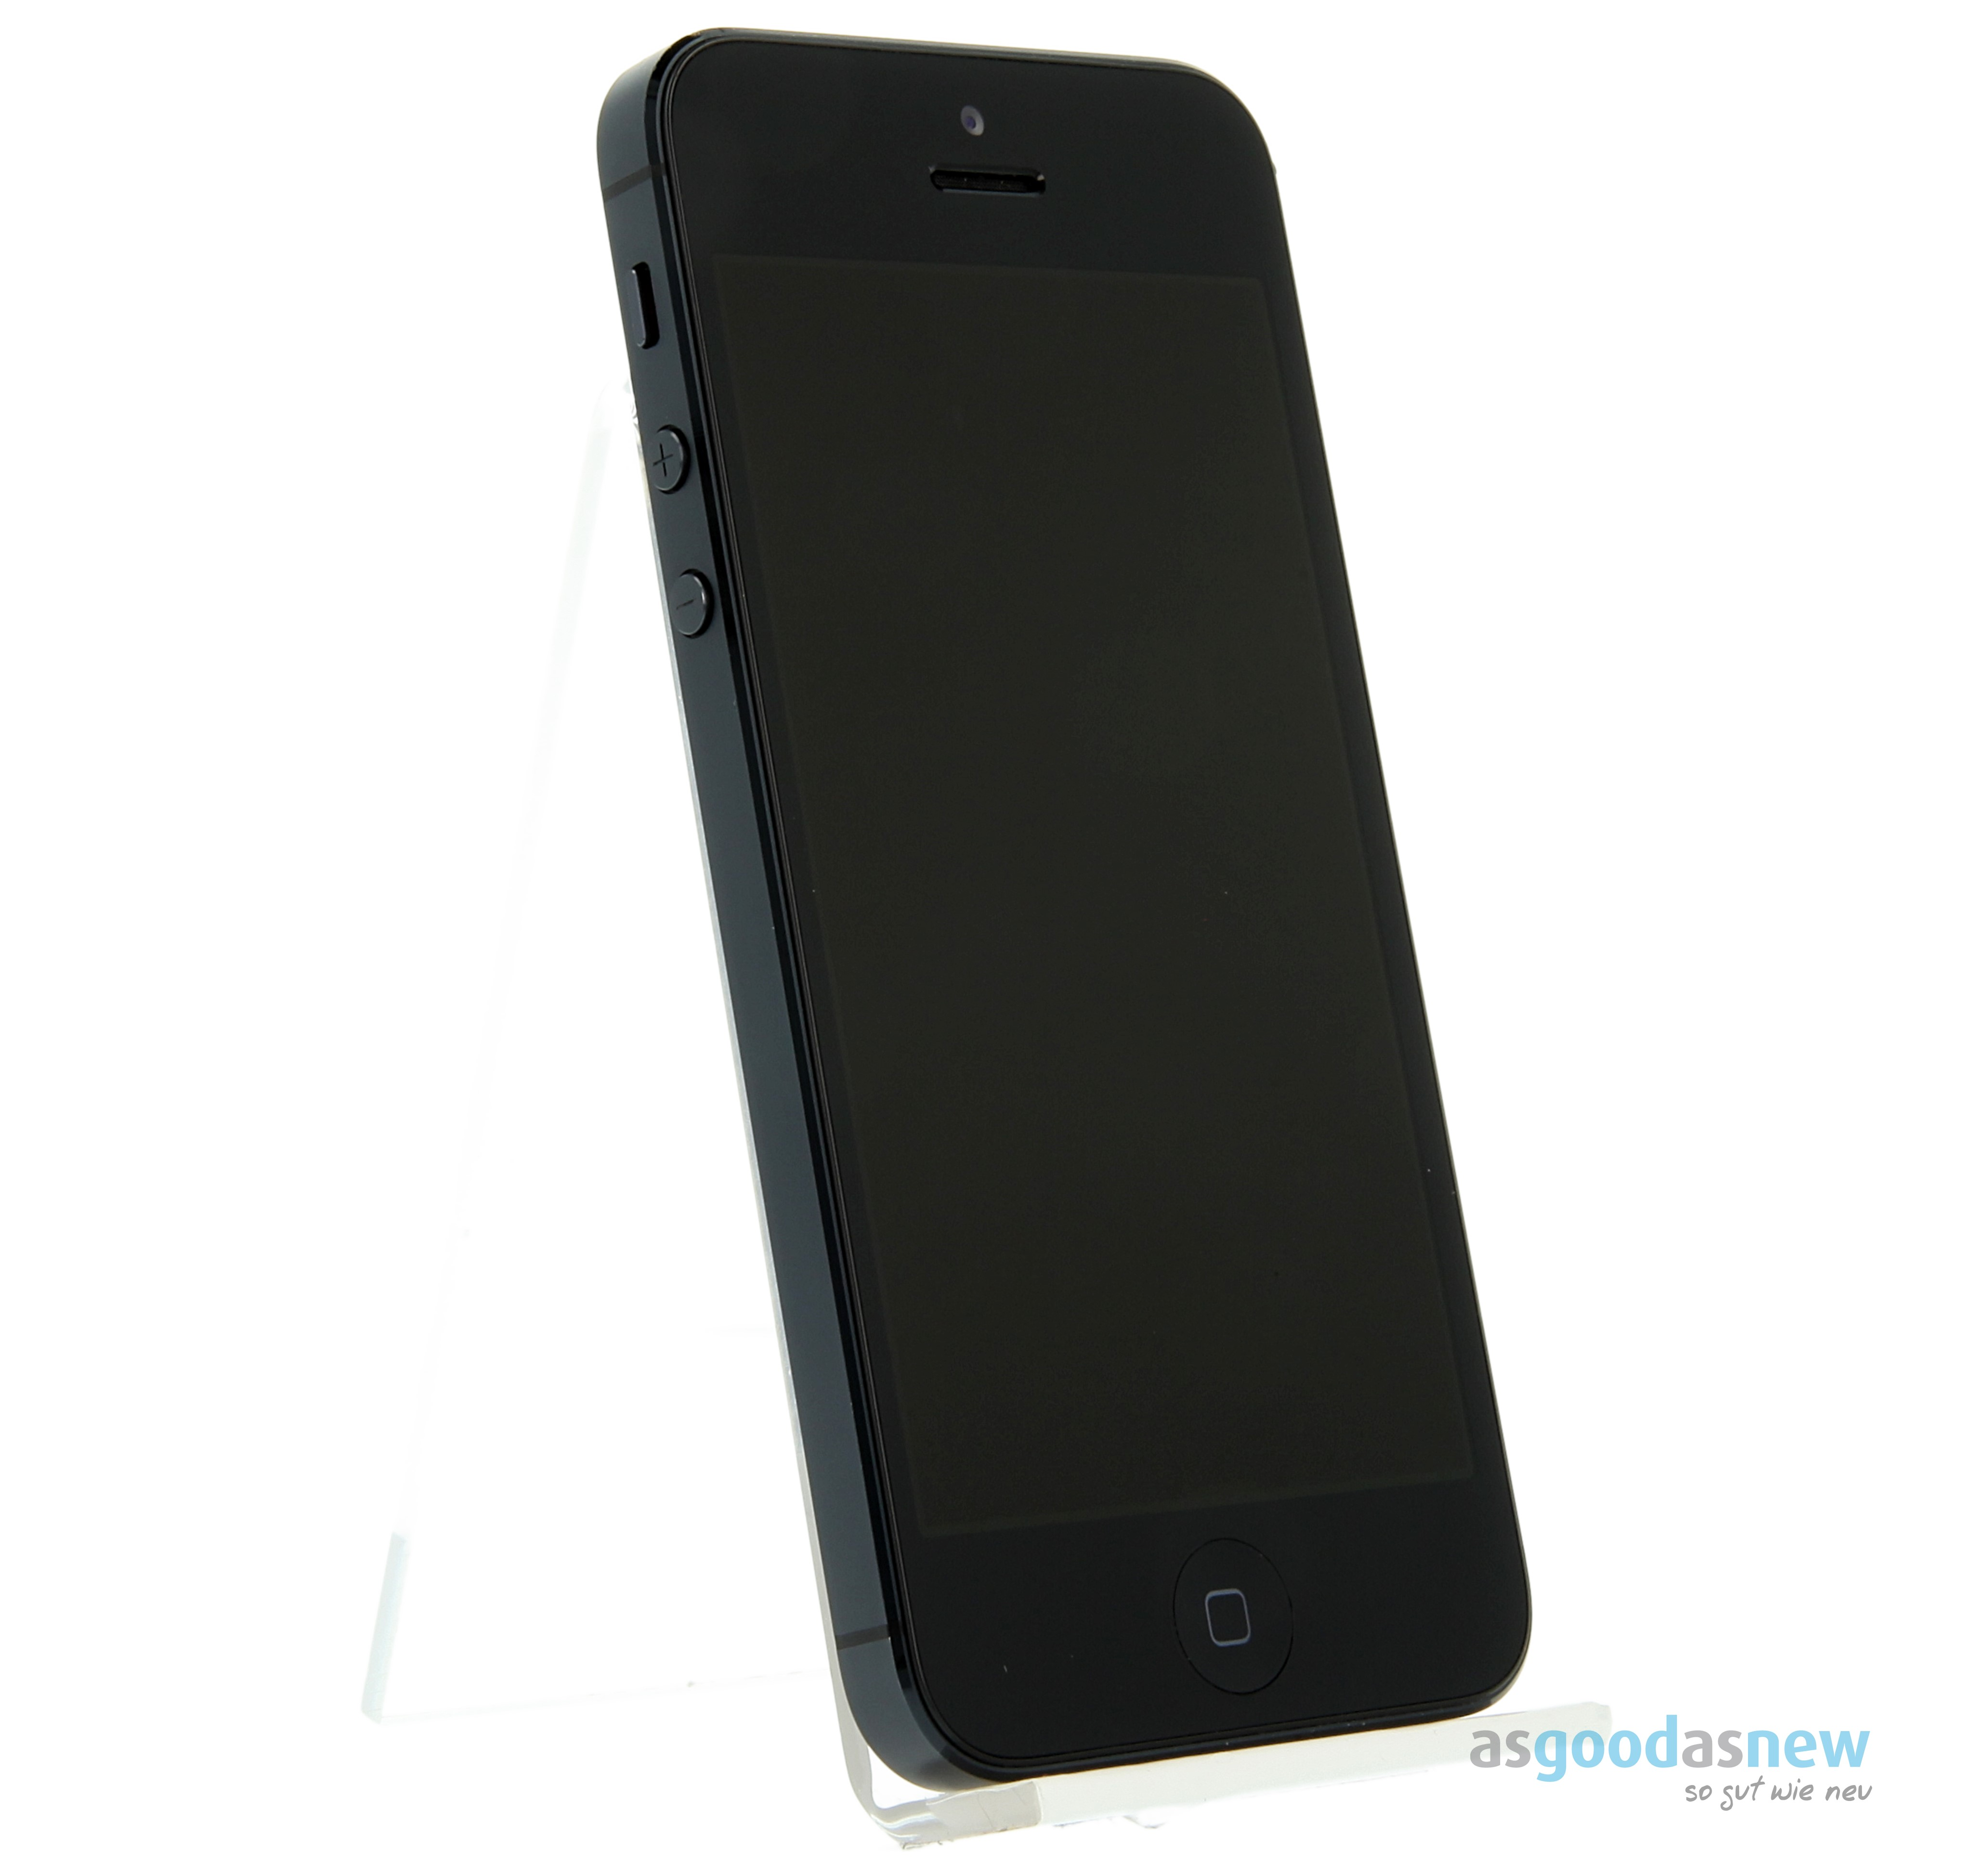 Apple-iPhone-5-16-GB-Schwarz-Graphit-DE-T-Mobile-SIMLOCK-in-OVP-880543